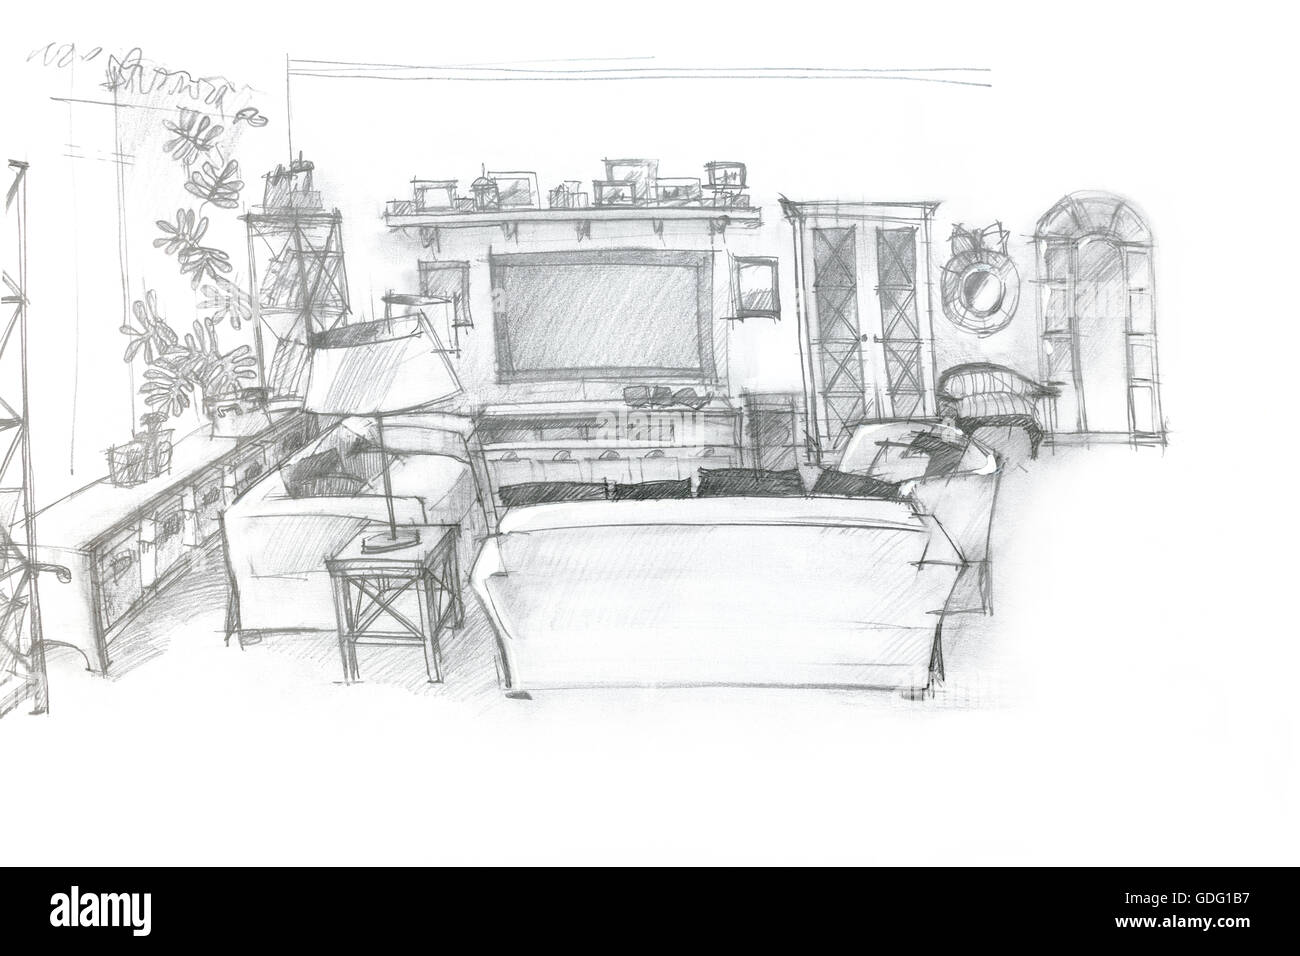 freehand sketch perspective architectural drawing of